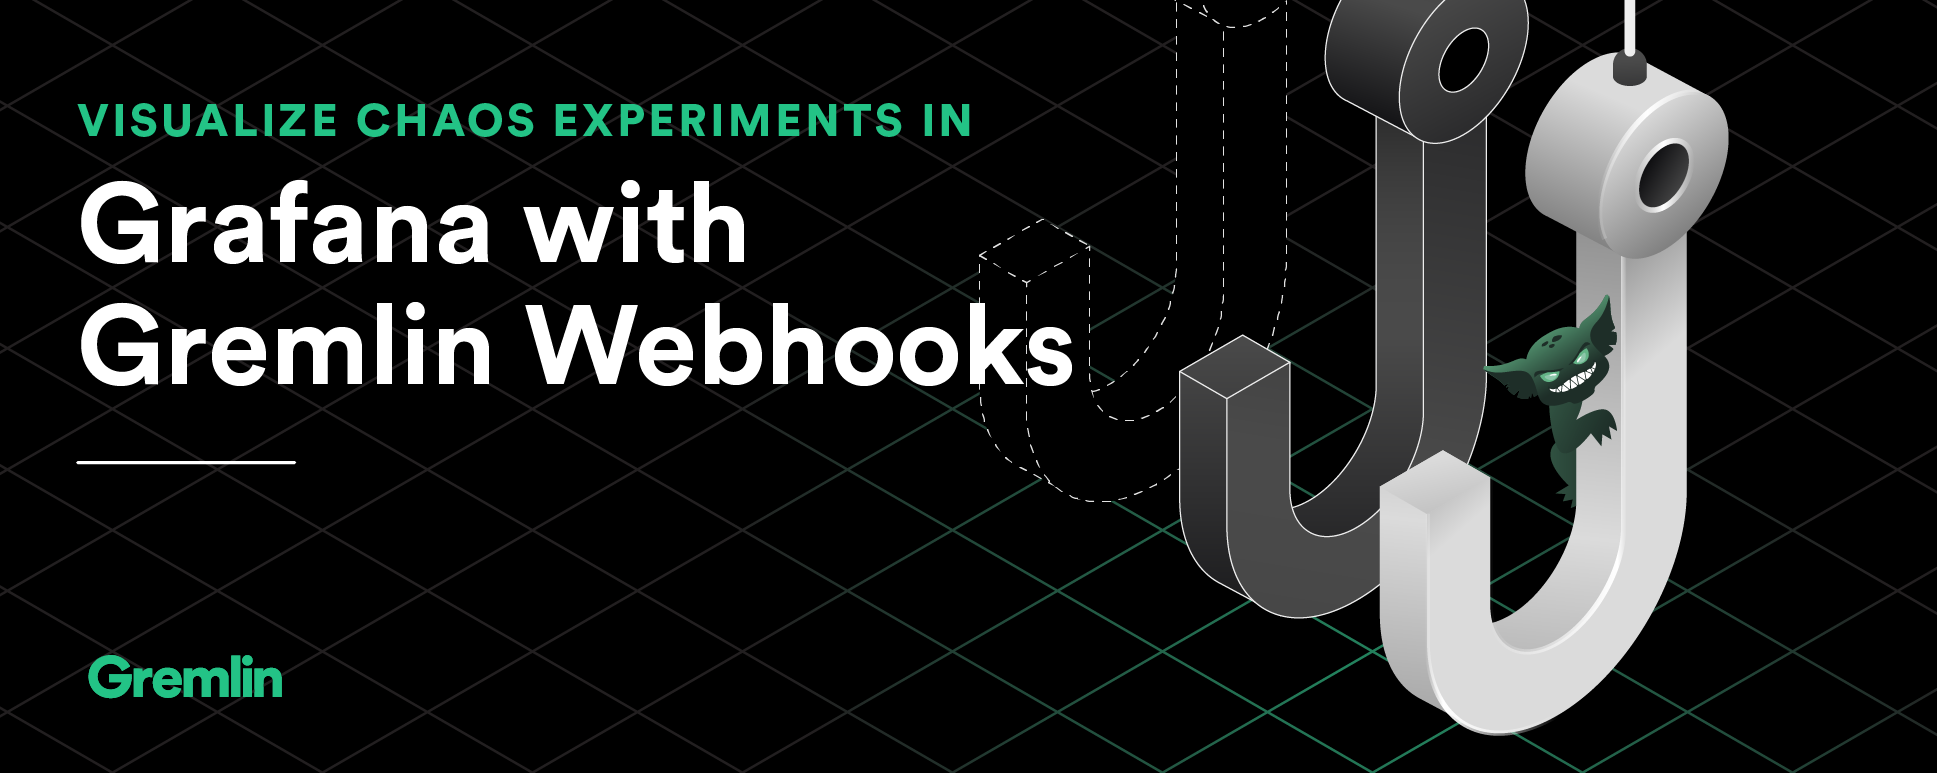 Visualize Chaos Experiments in Grafana with Gremlin Webhooks